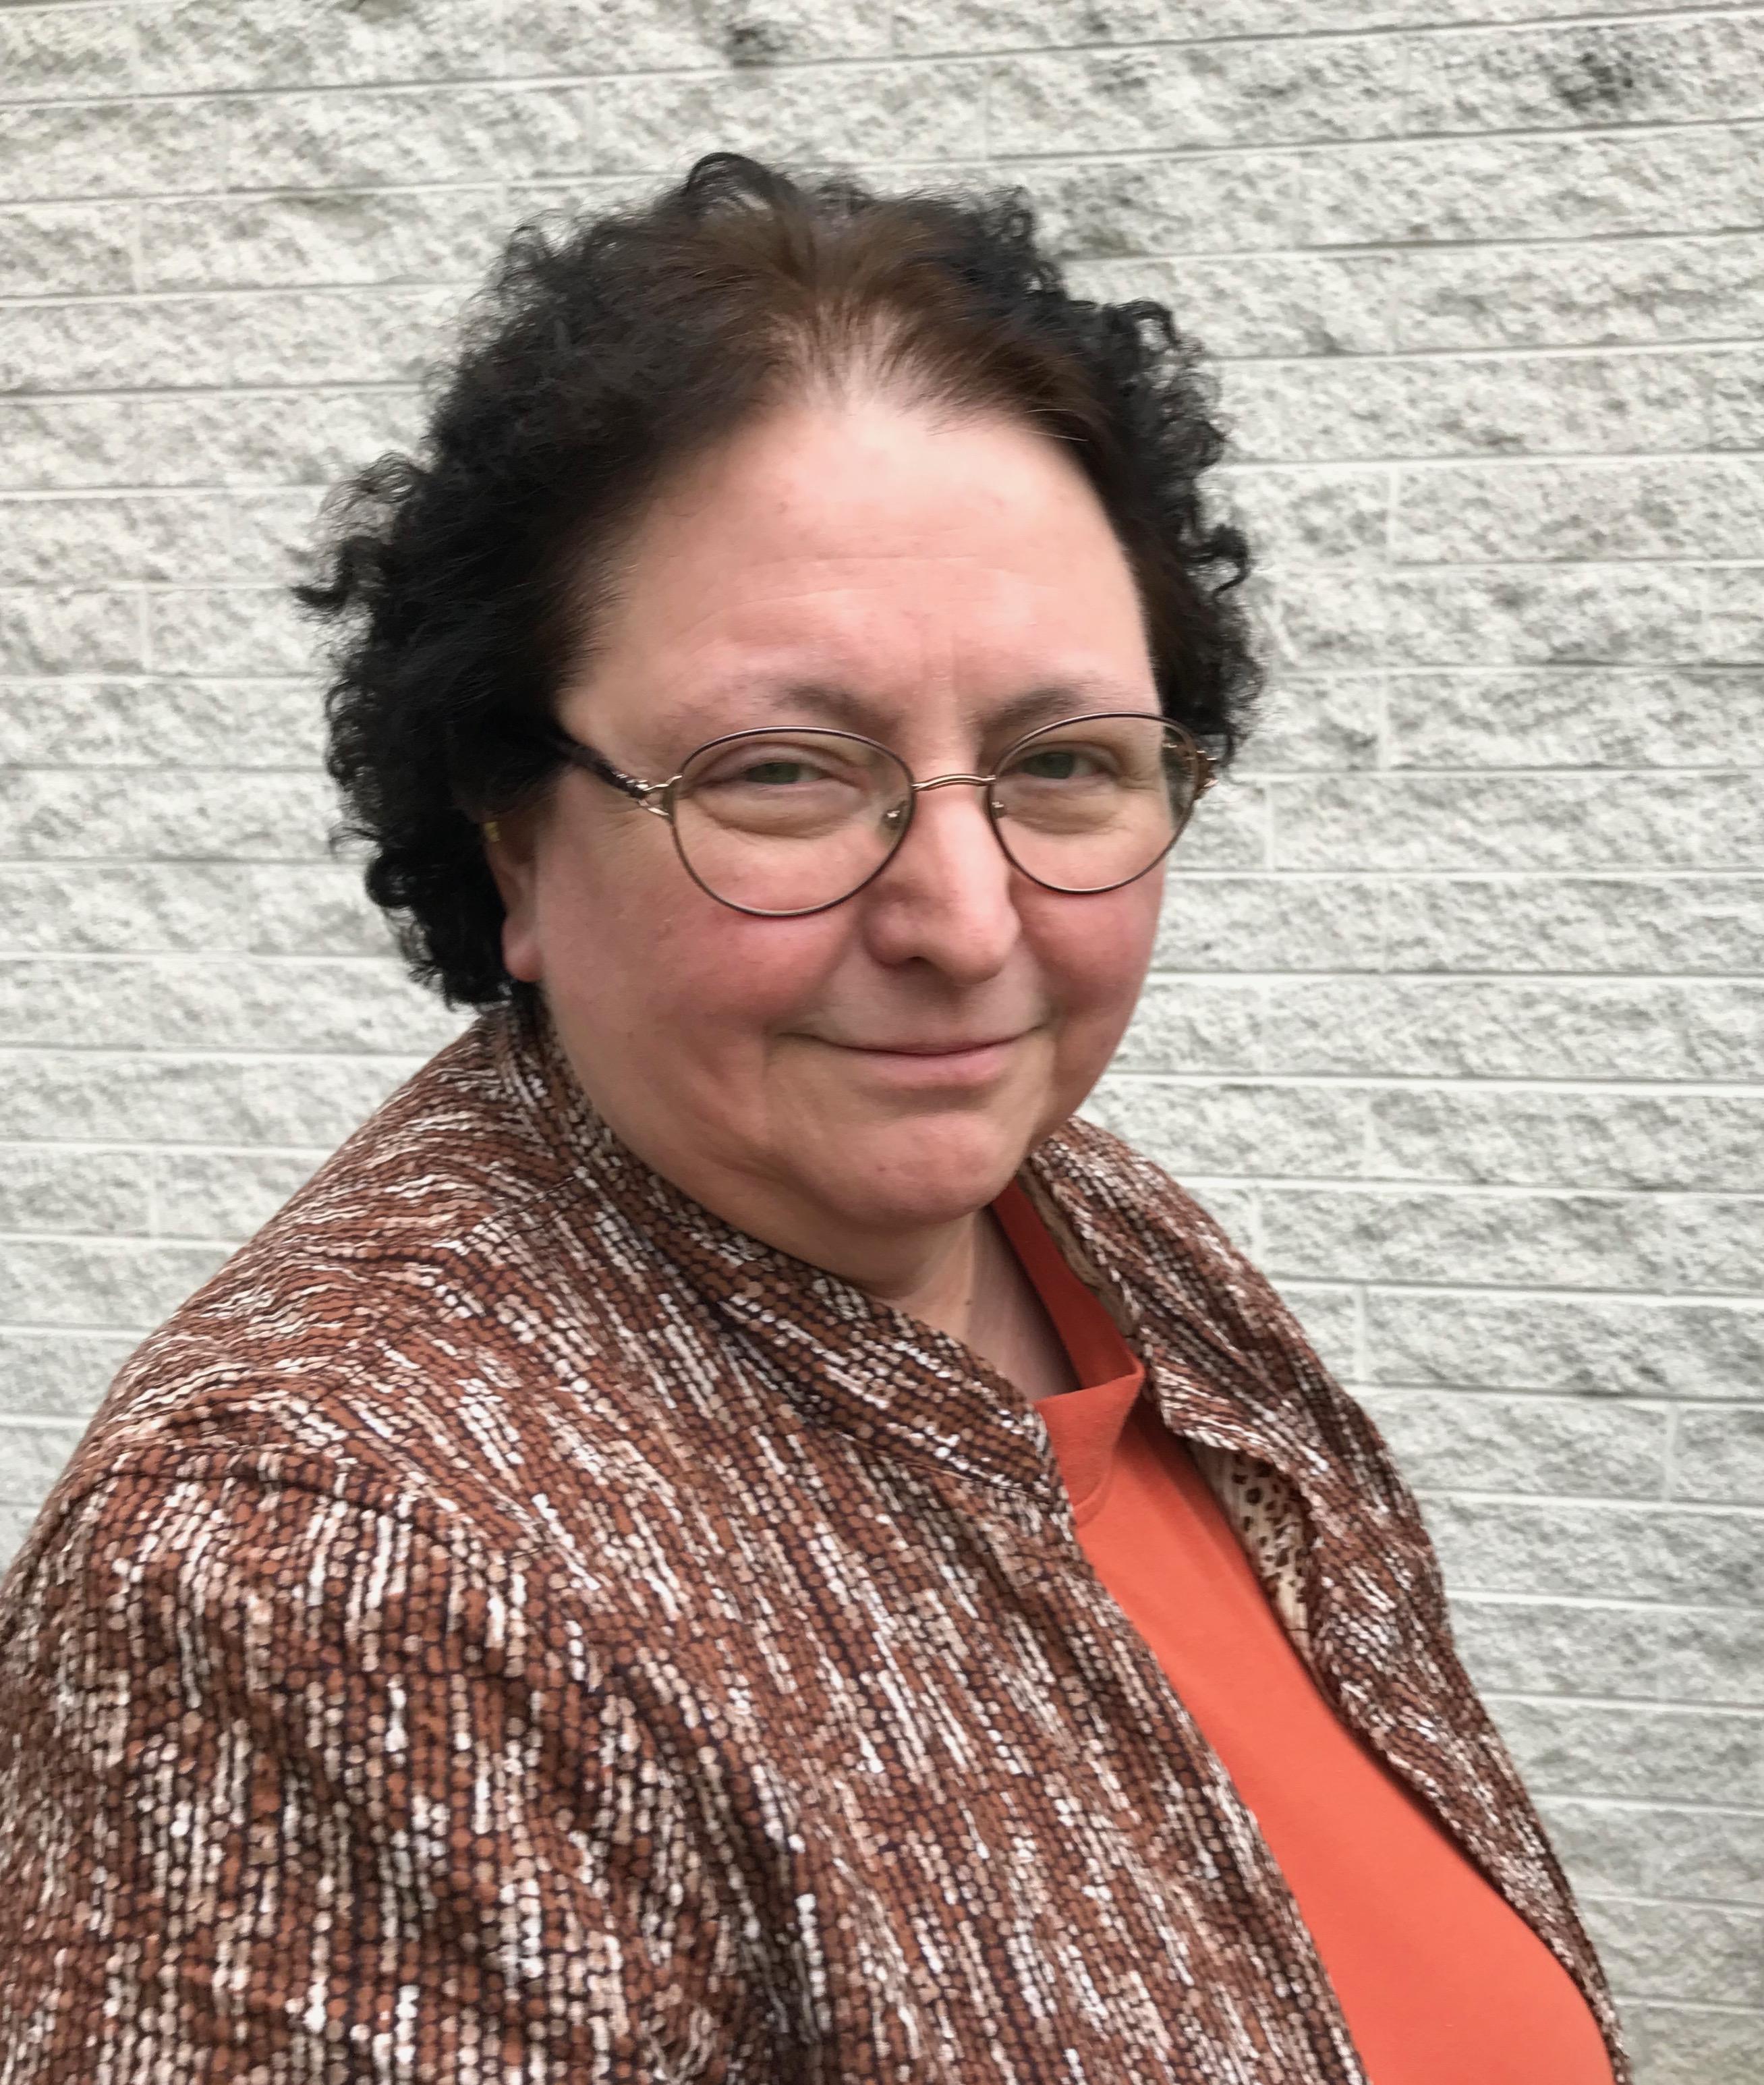 The Joy of Hebrew: Making Meaningful Connections to the Language, Q&A with Dina Maiben